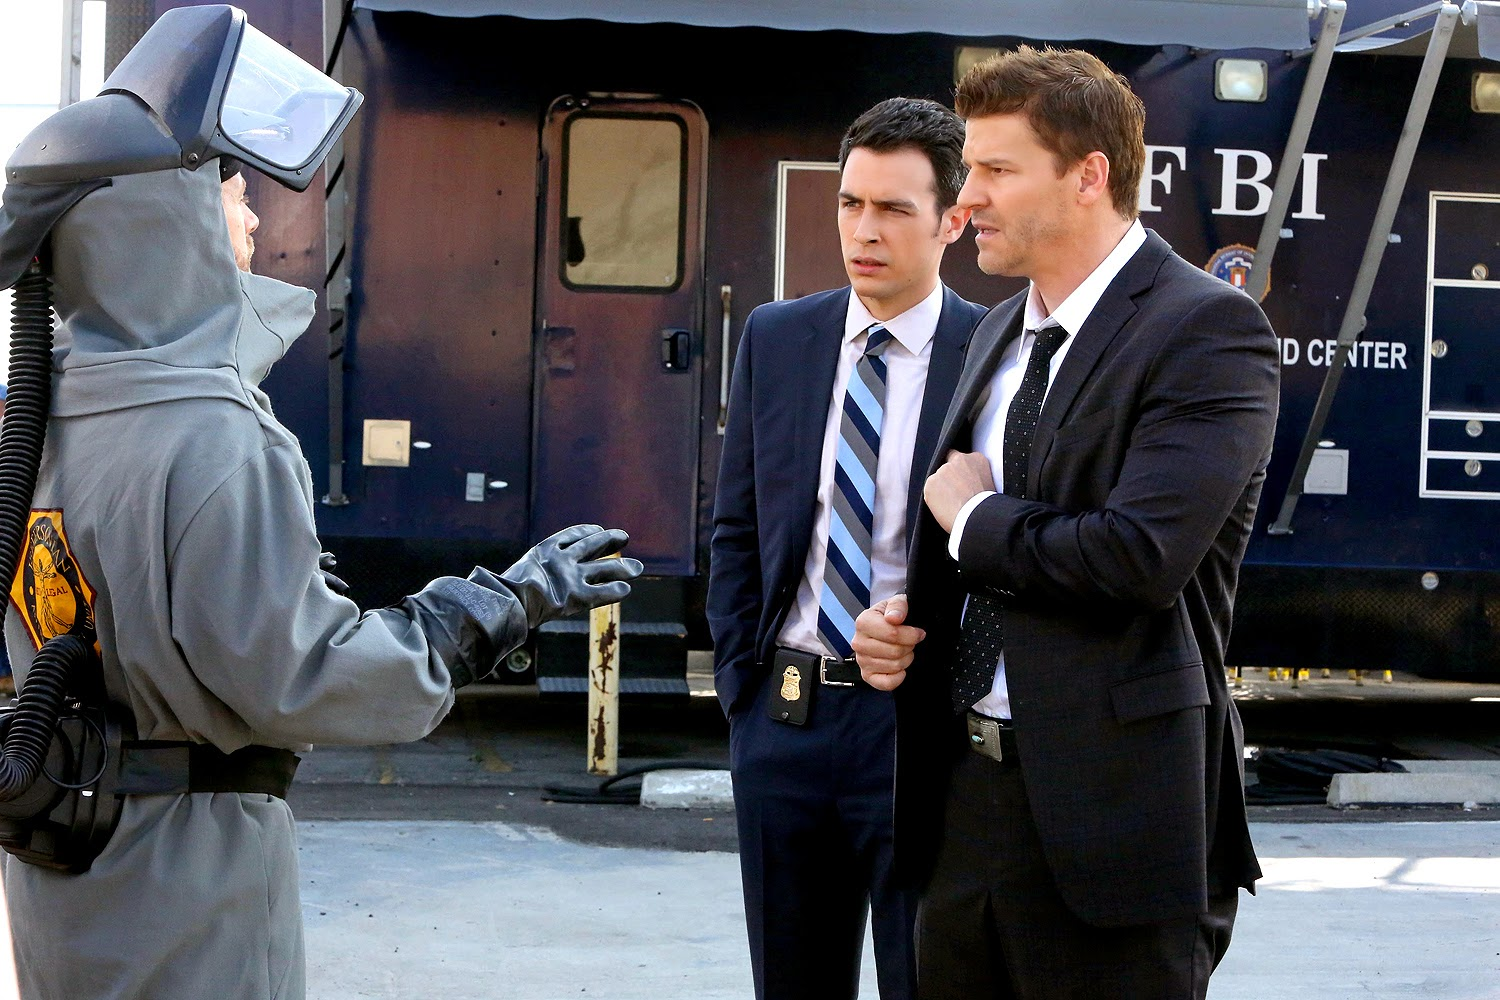 Bones - Season 10, Episode 18 (Review)